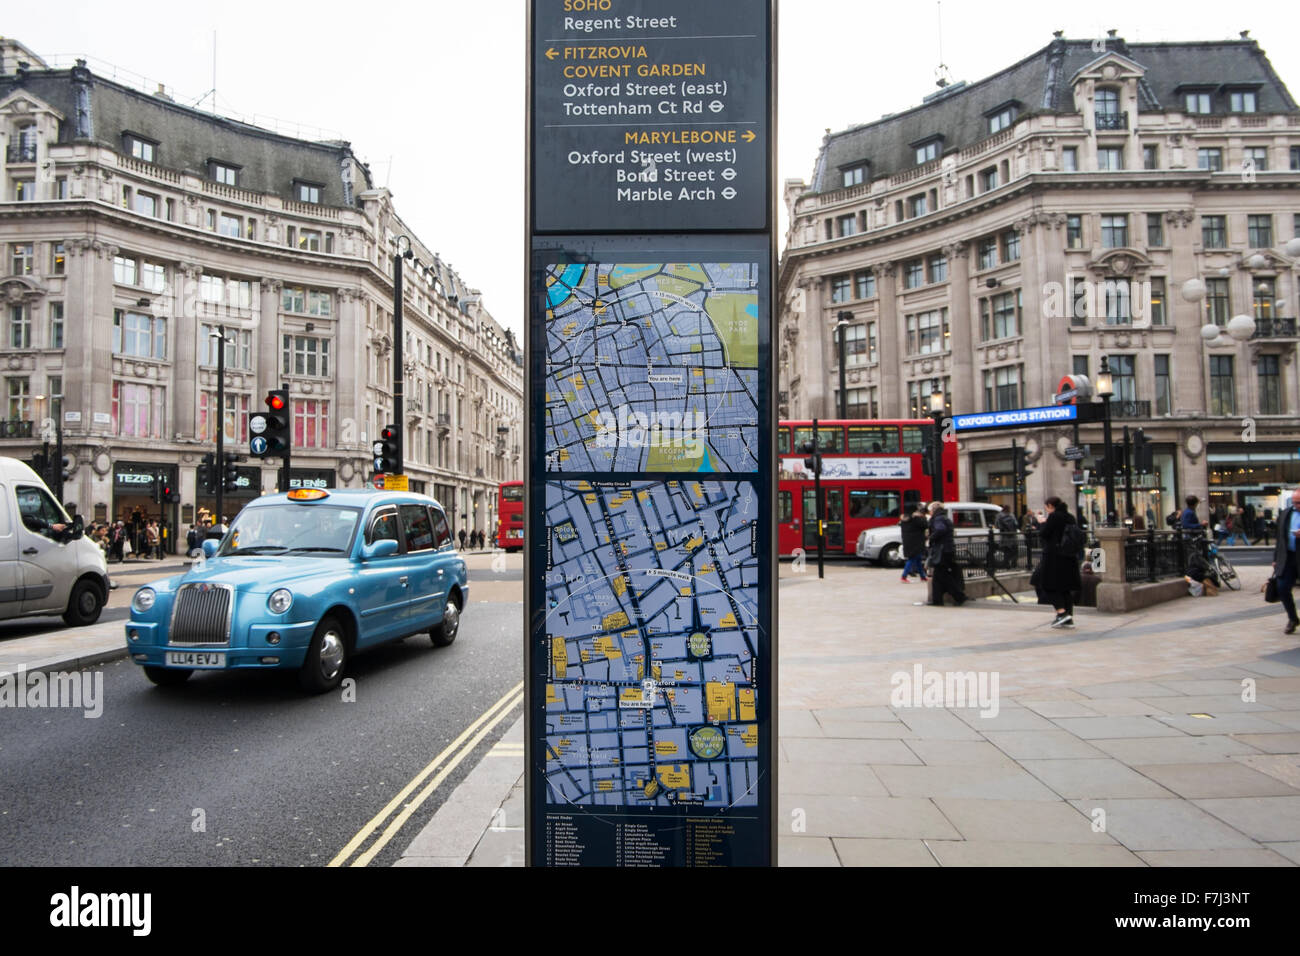 Street sign showing a map of where you are at Oxford Circus and